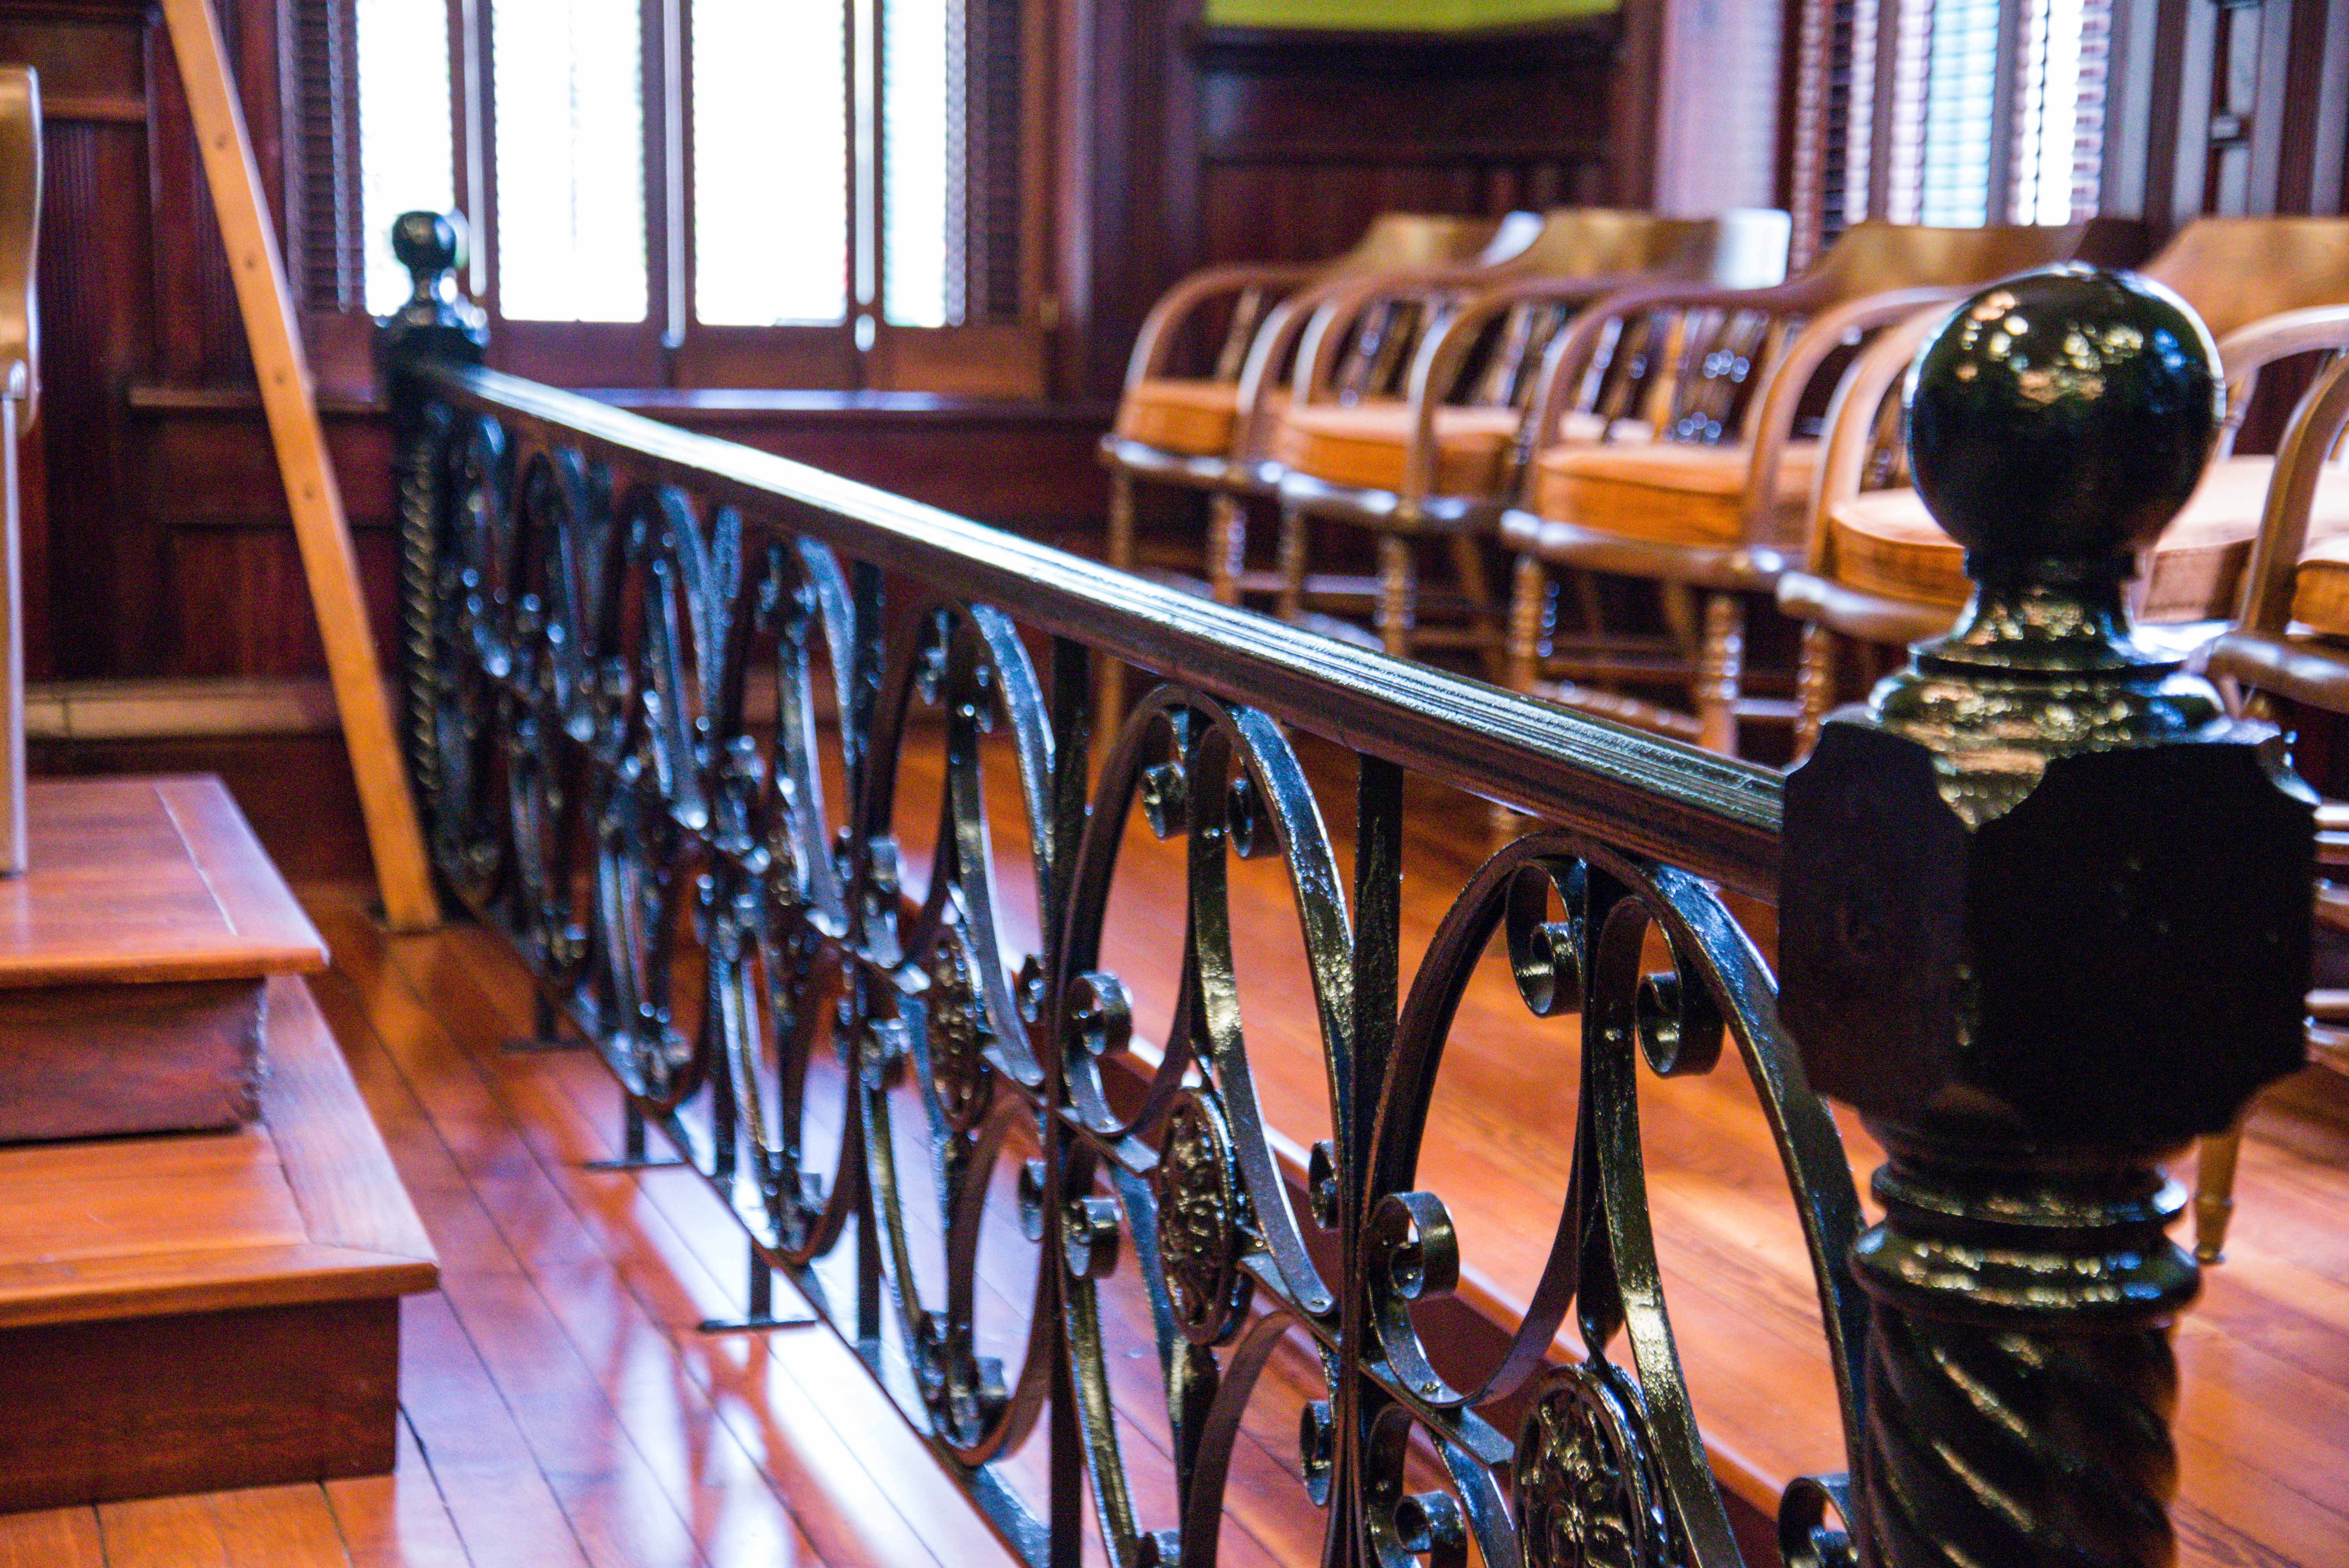 Jury Box, County Court